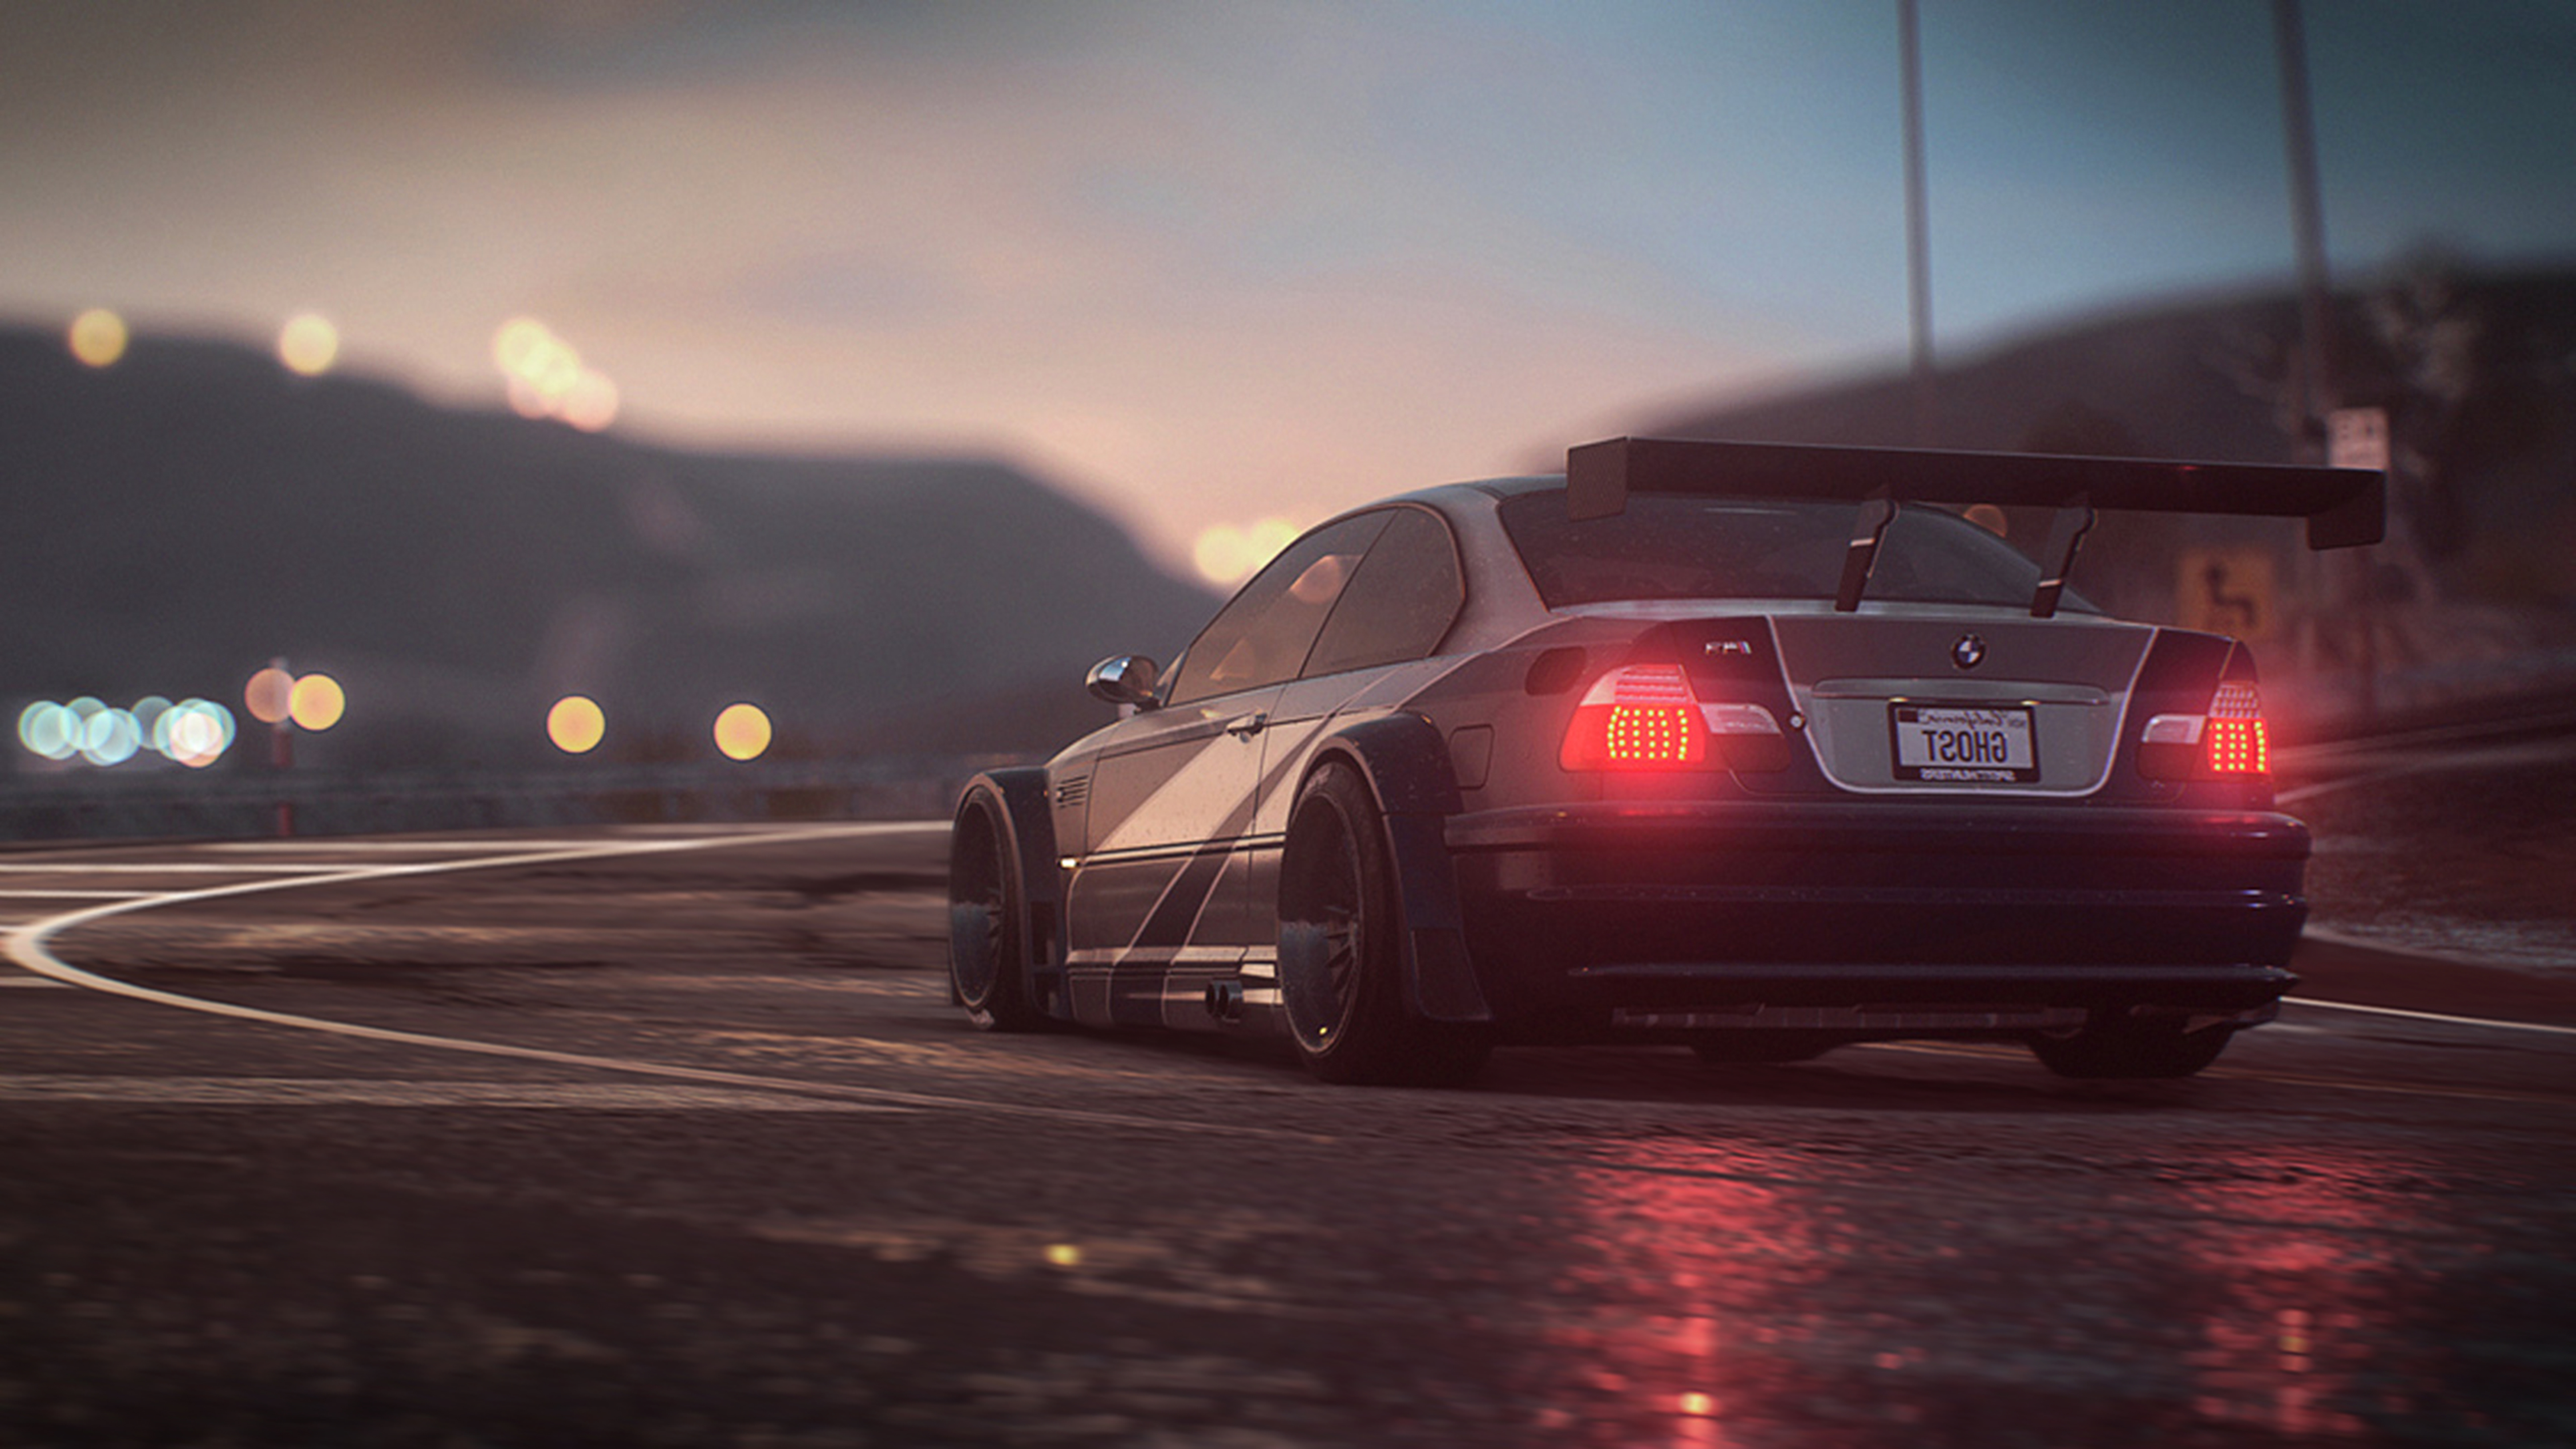 Beautiful Need For Speed Wallpaper Full Hd Pictures